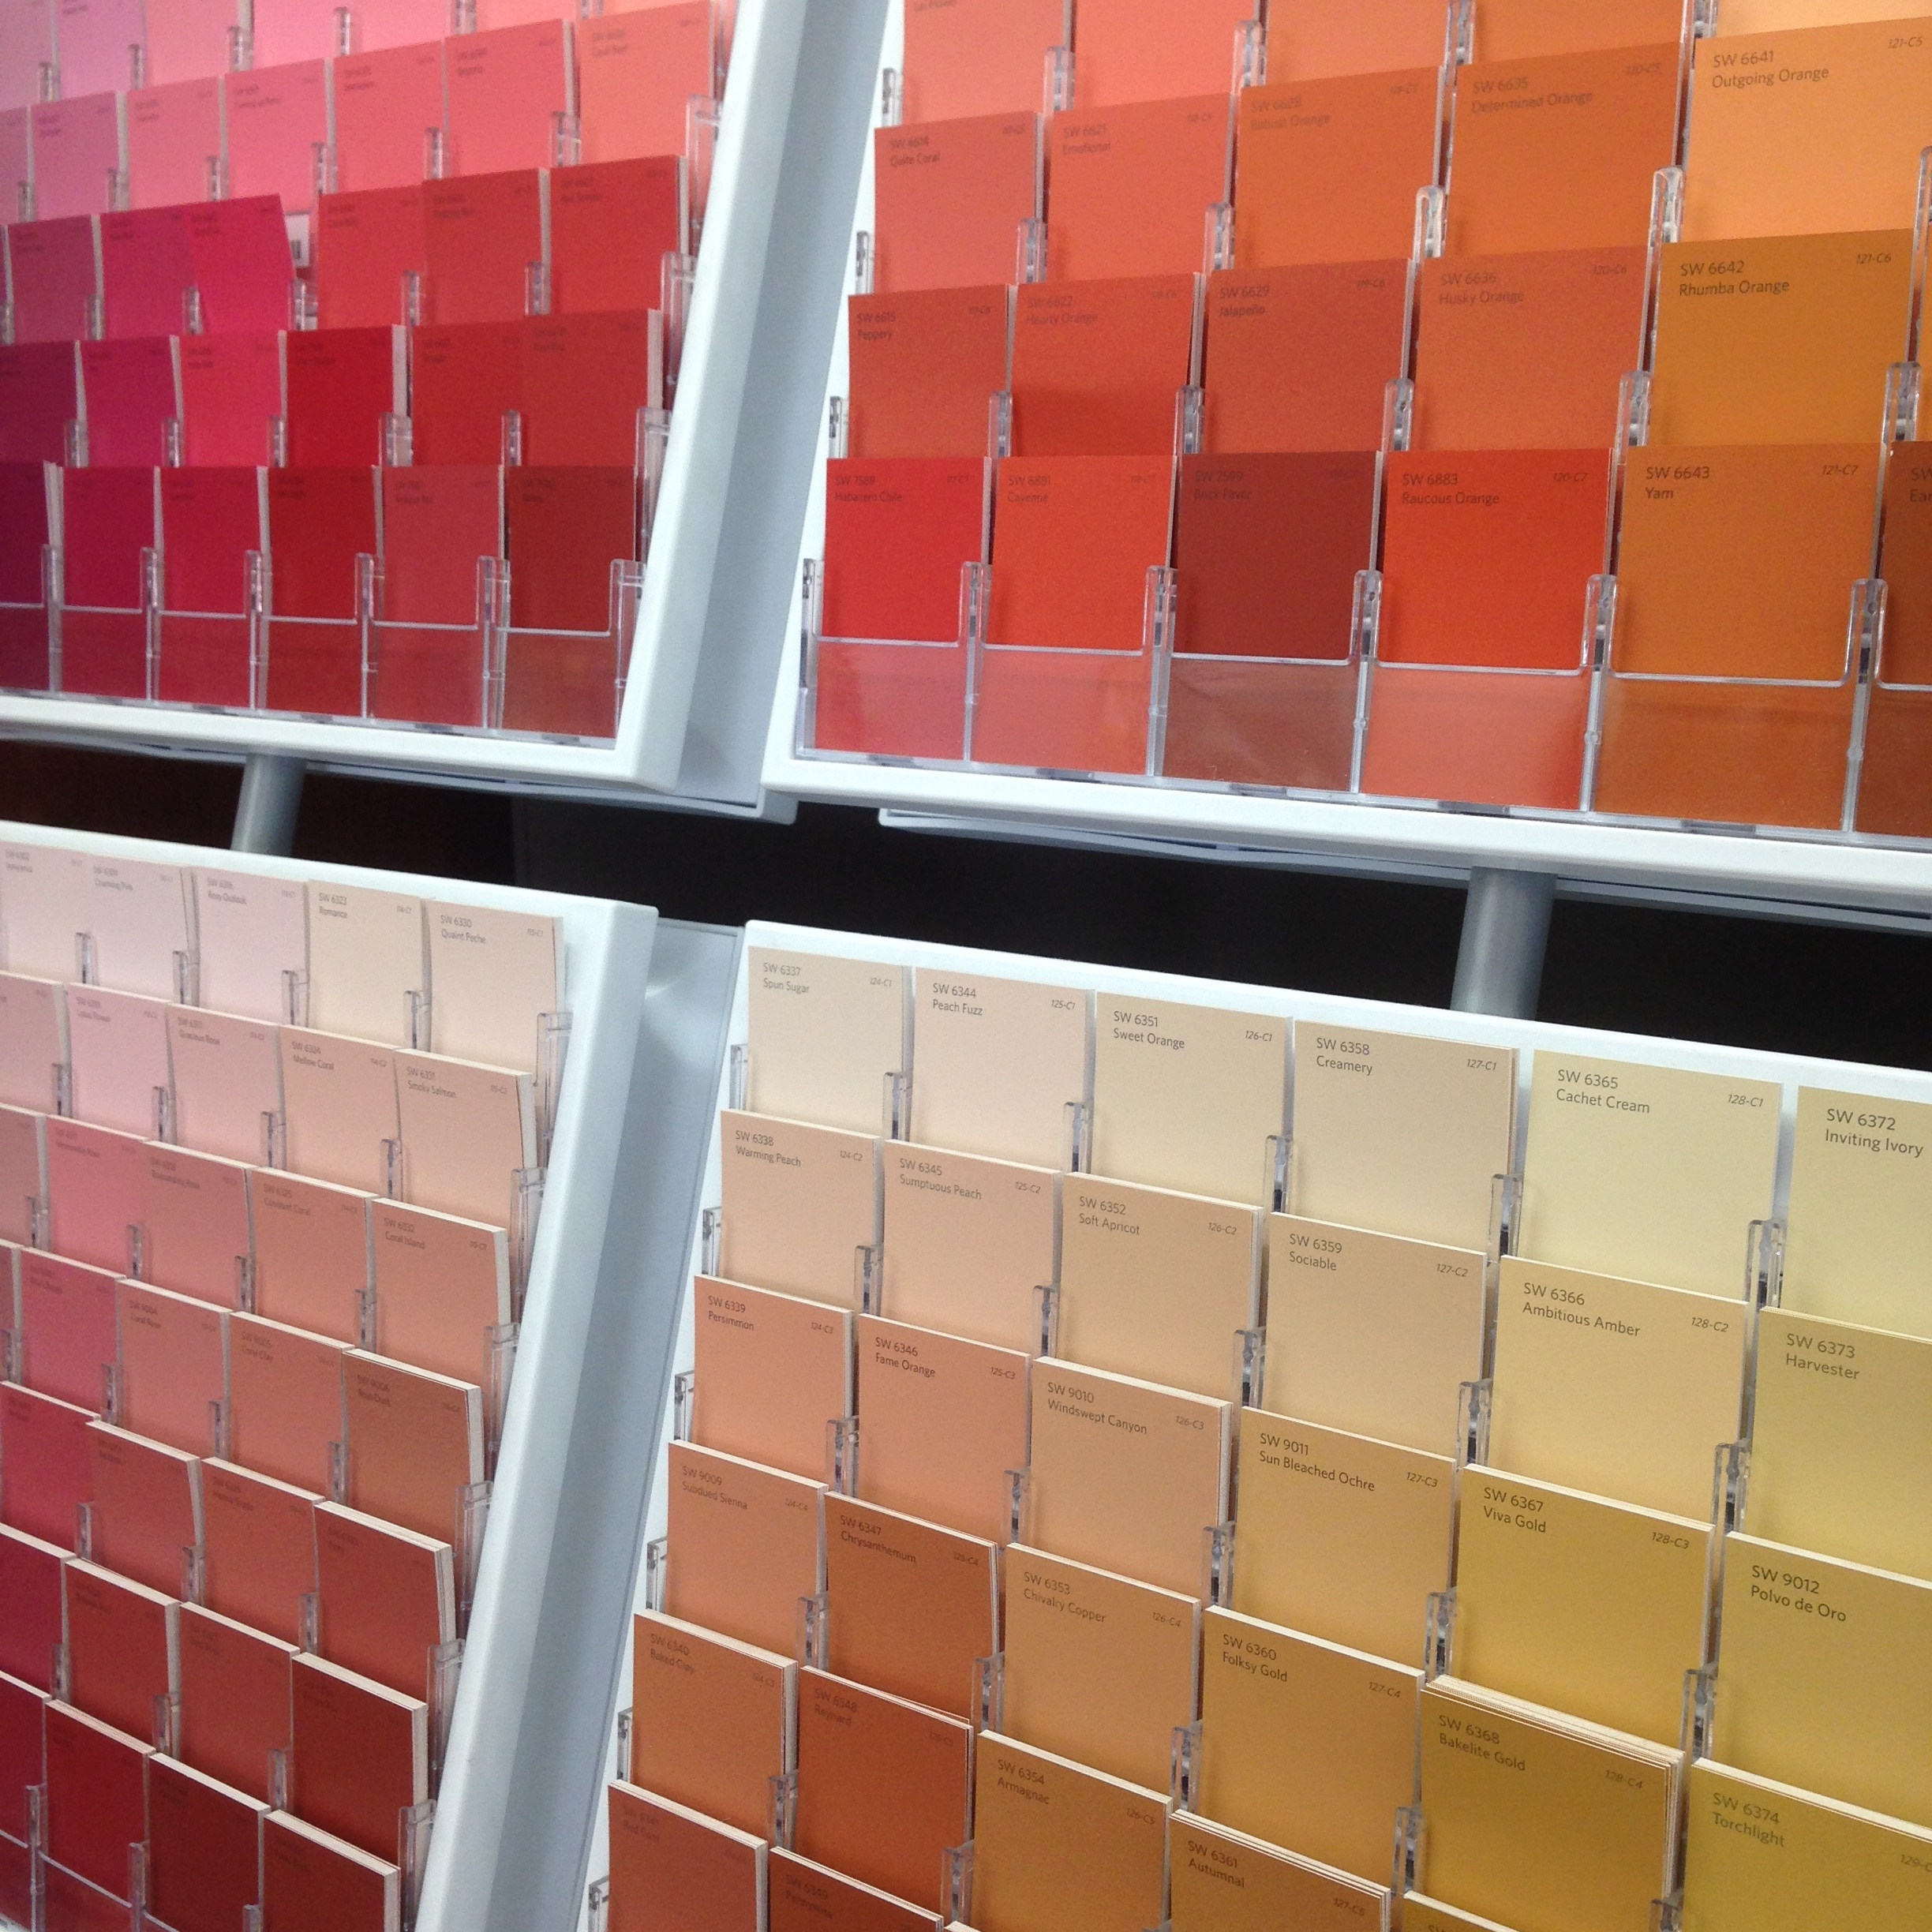 Medium Paint Color Consultation - The Medium Paint Consultation is for choosing up to 10 paint colors for two or three rooms.